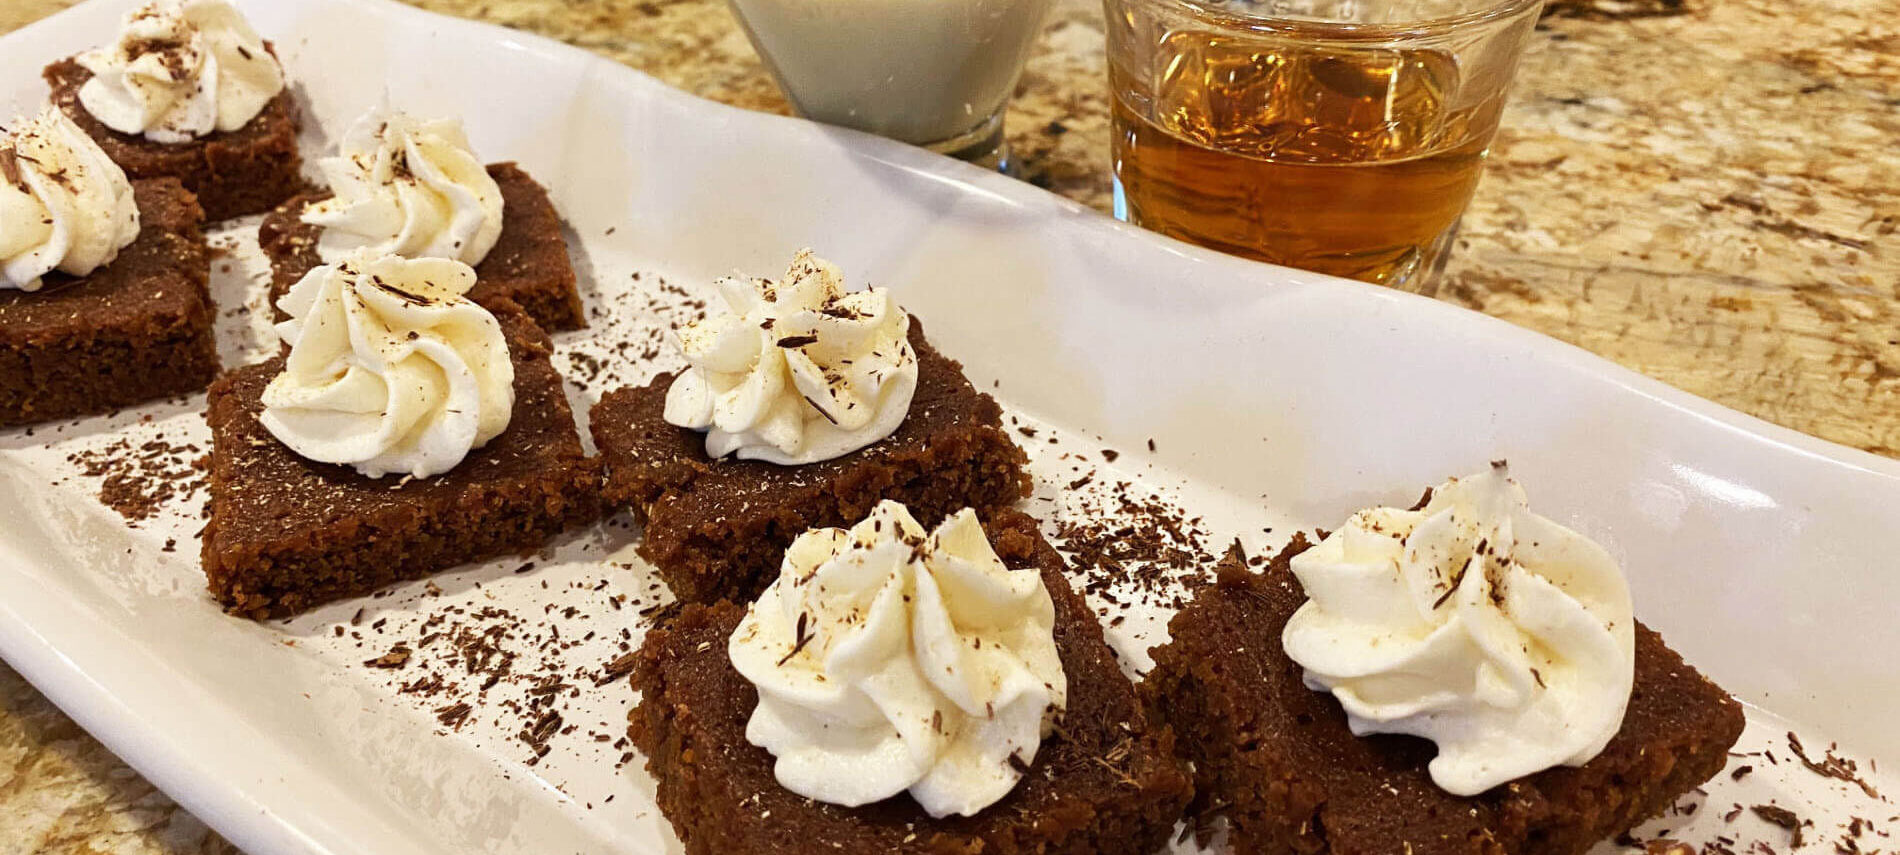 white plate with square brown brownies topped with white whipped cream and sprinkled with shaved chocolate, and glasses of white eggnog and golden bourbon